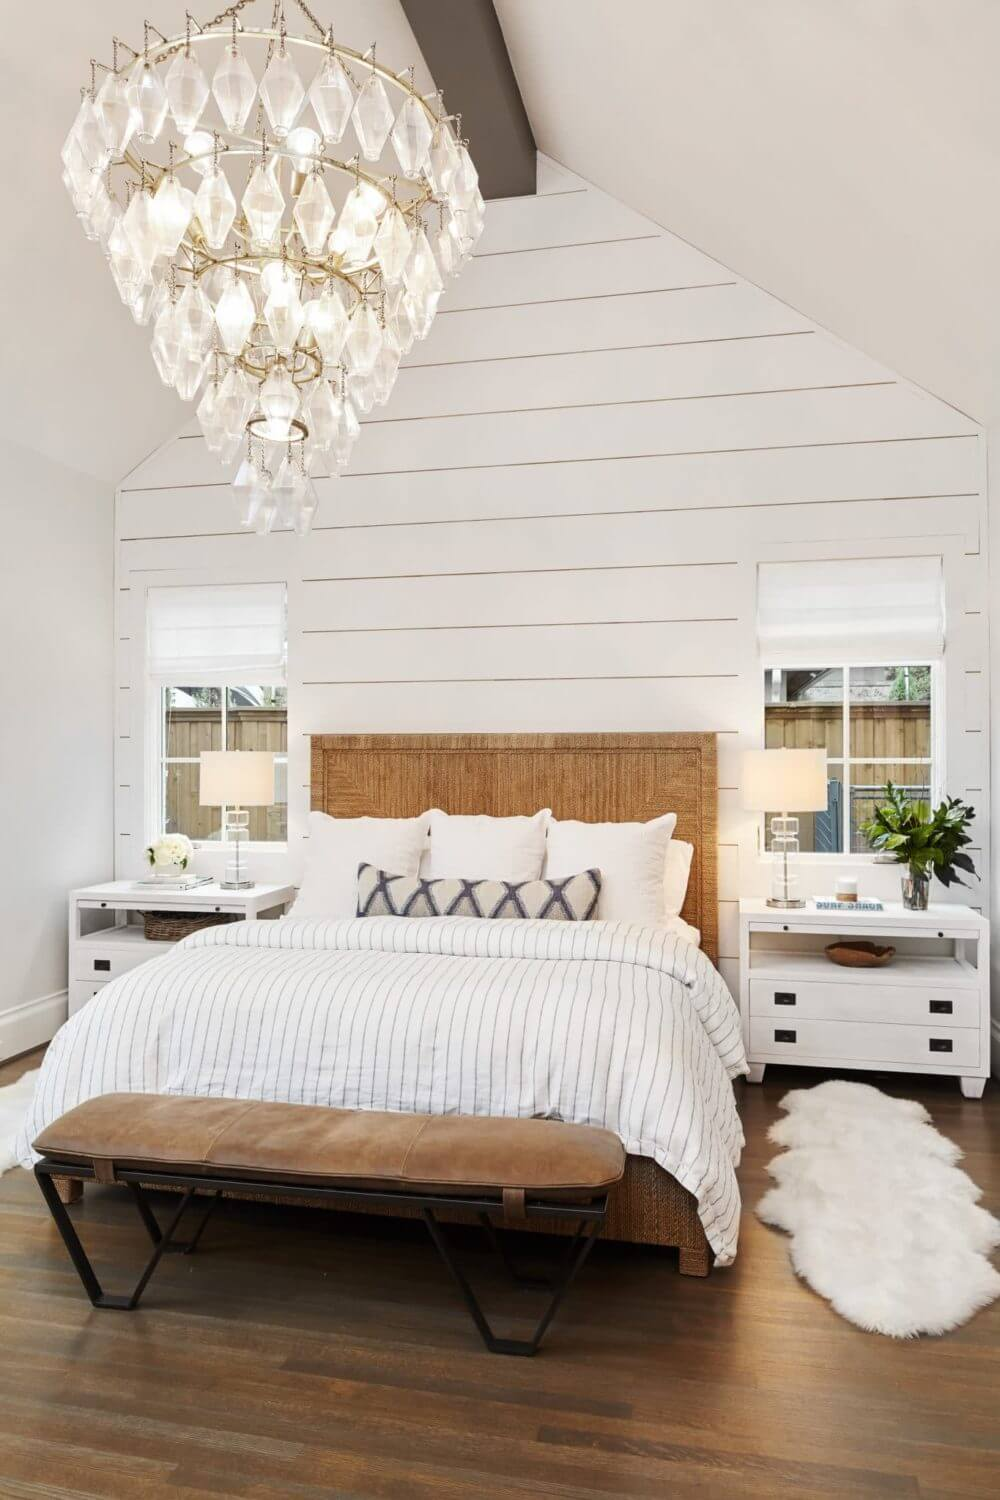 Master bedroom design created by ML Interiors Group of Dallas, Texas | Statement chandelier | Textured bed | Shiplap